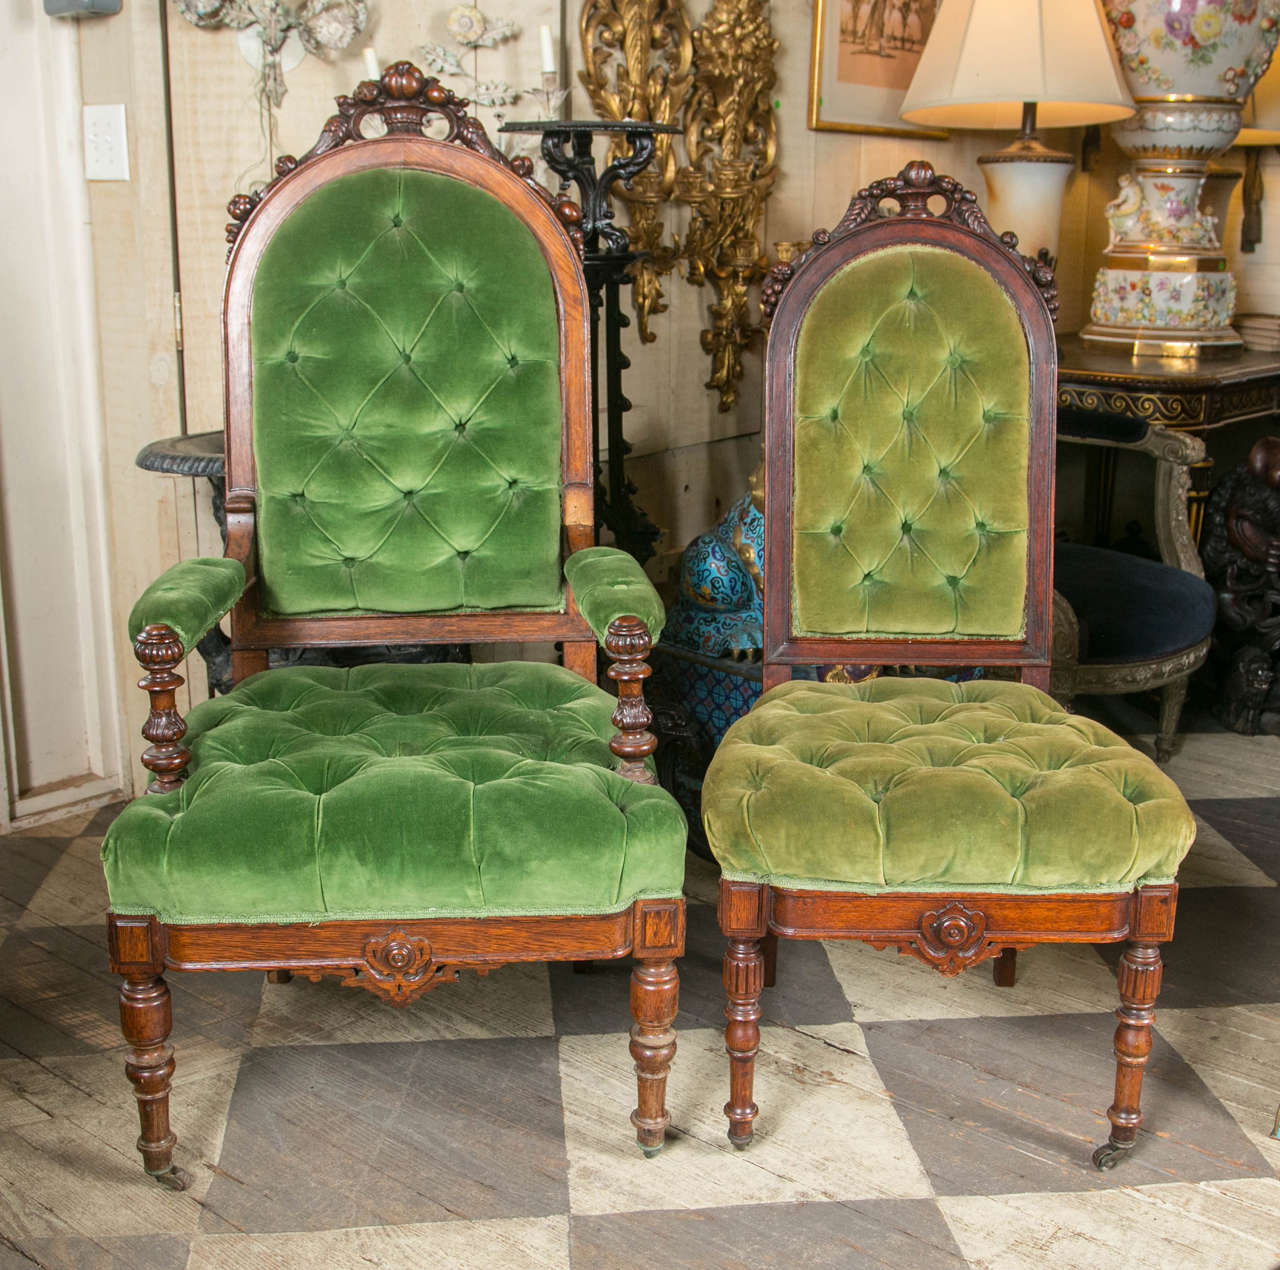 This set comprises two armchairs and six side chairs. The oak frames are hand-carved and decorated with nuts and fruits. The turned front legs have casters. The side chairs are smaller in proportion to the arm chairs. The dimensions given are of the